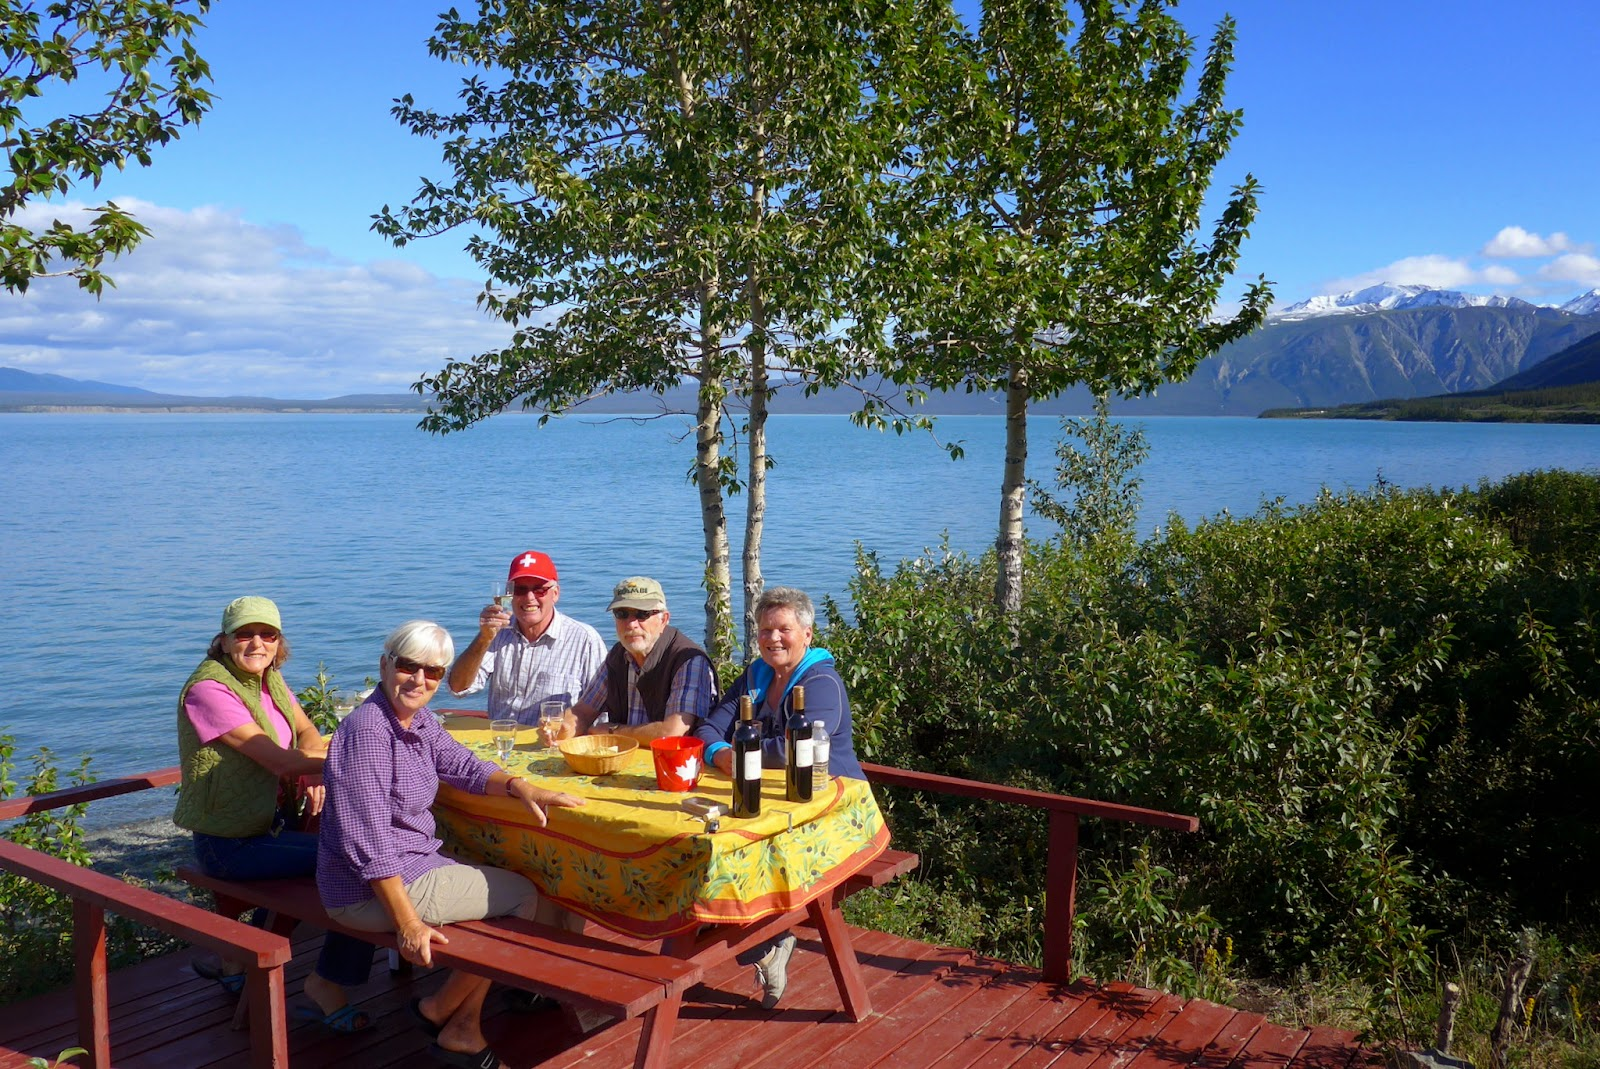 Liz and Annamarie on the near side. Hansuli, Christian and Lisbeth. Cottonwood RV Park on Kluane Lake